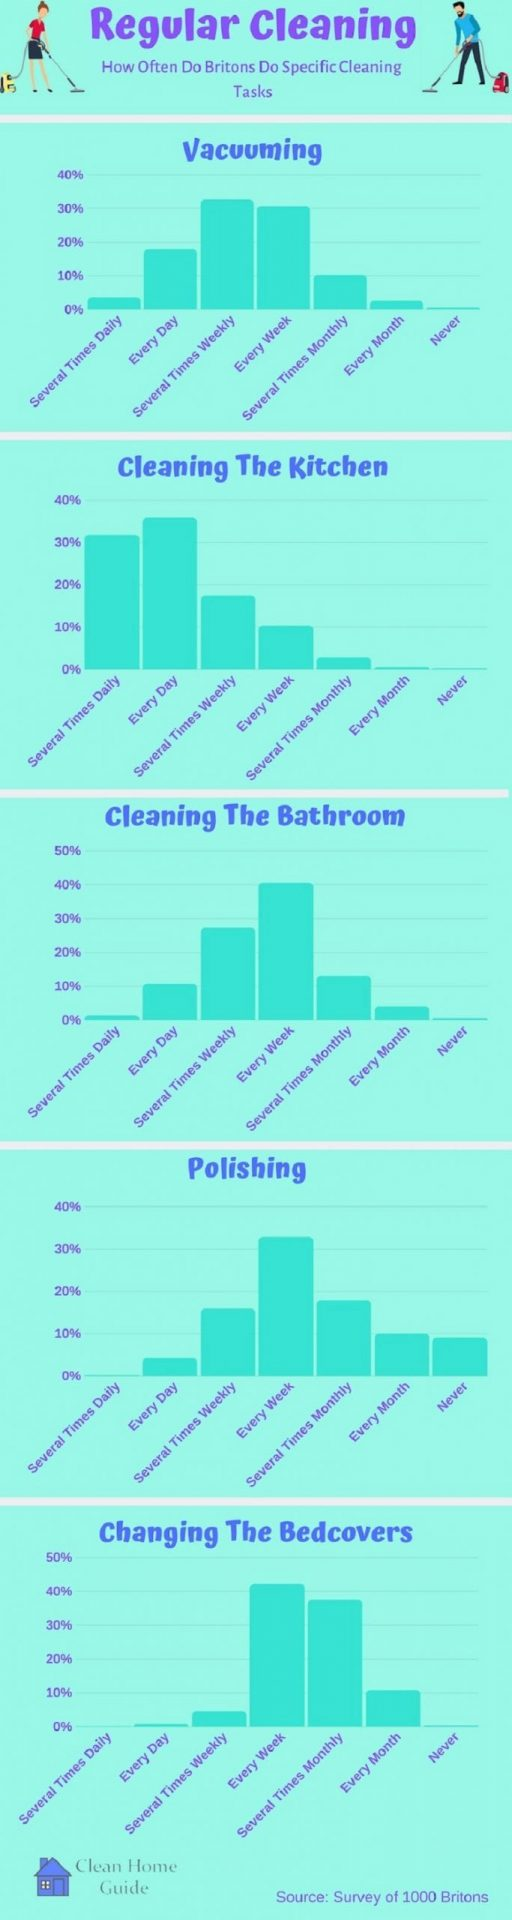 Different Cleaning Tasks